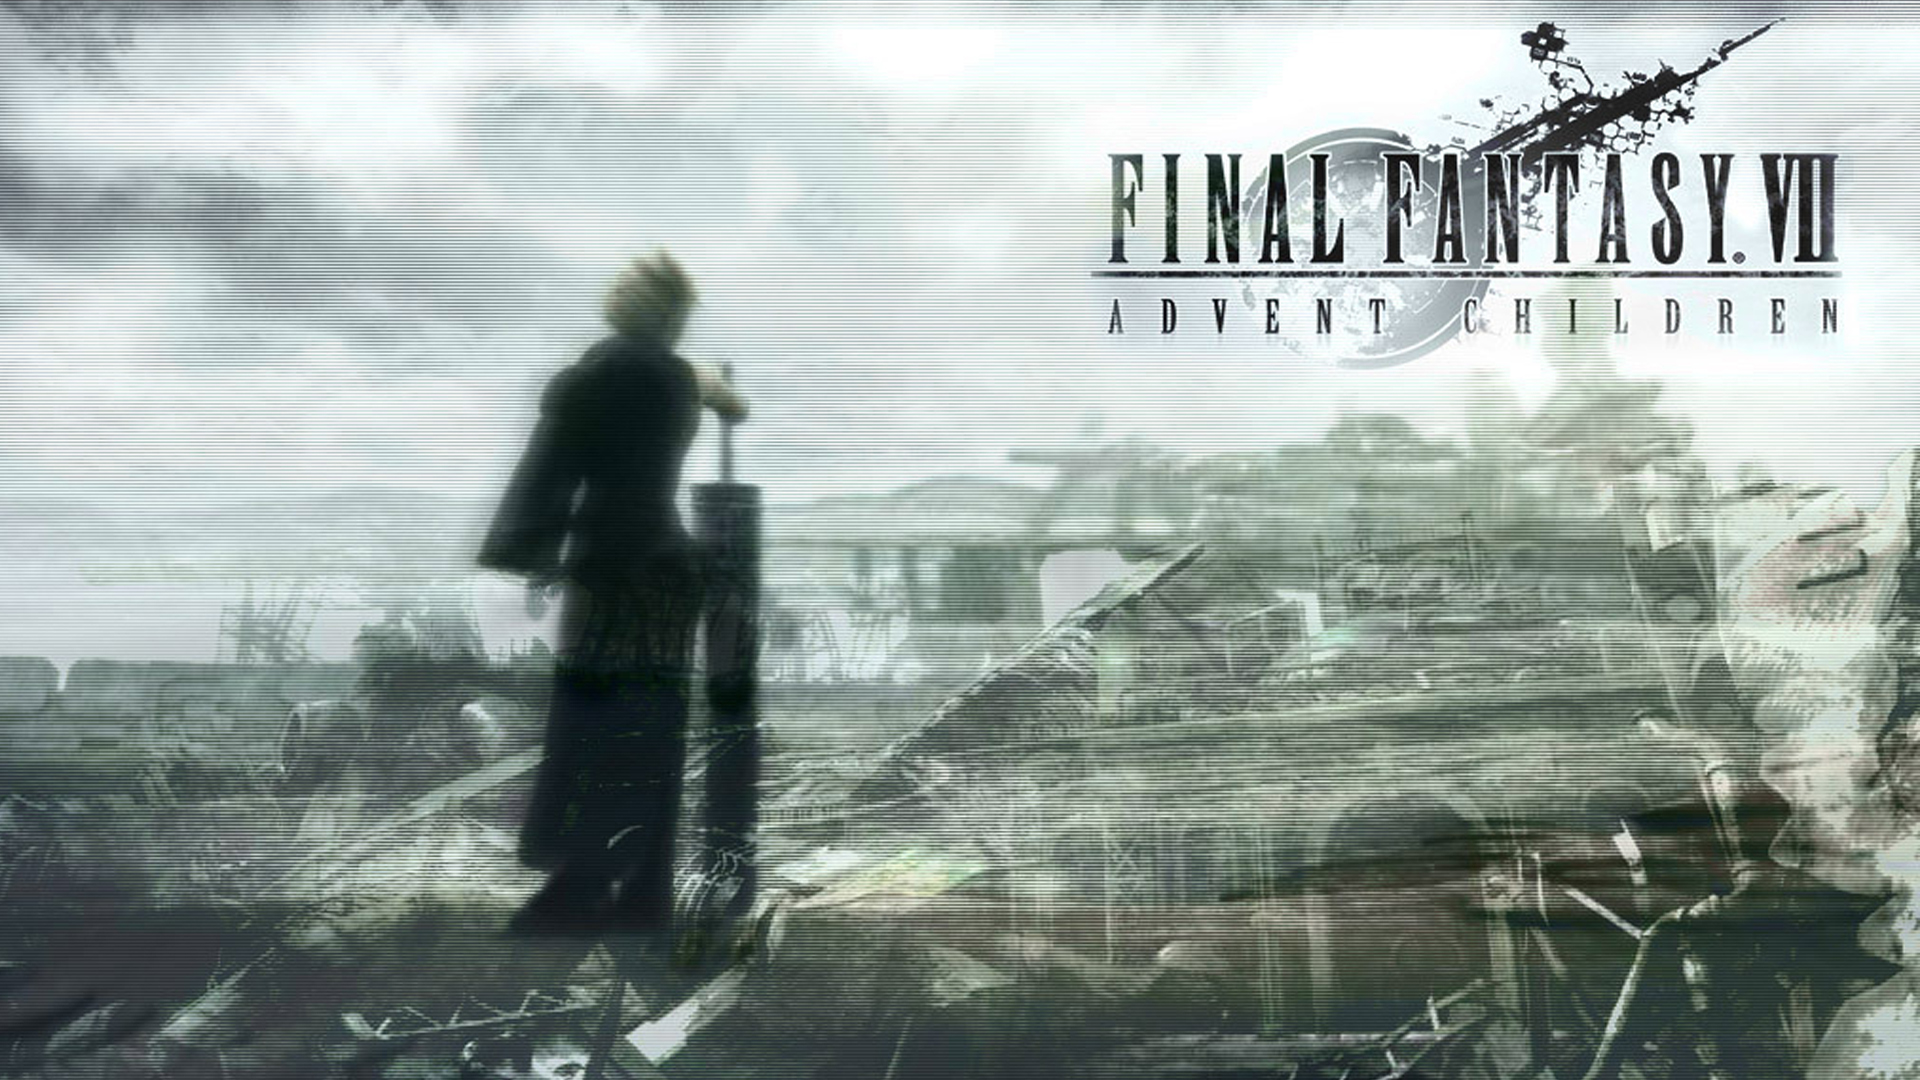 89 final fantasy vii advent children hd wallpapers backgrounds - 1080 Wallpapers Full Hd Wallpapers 1080p 15149_final_fantasy Jpg